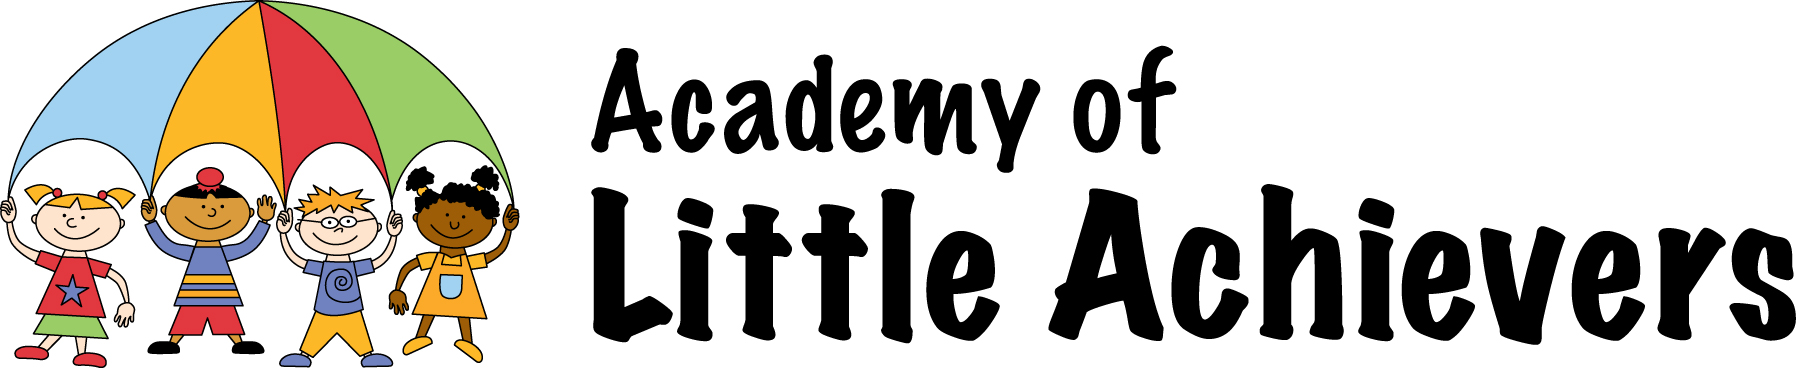 Academy of Little Achievers Inc